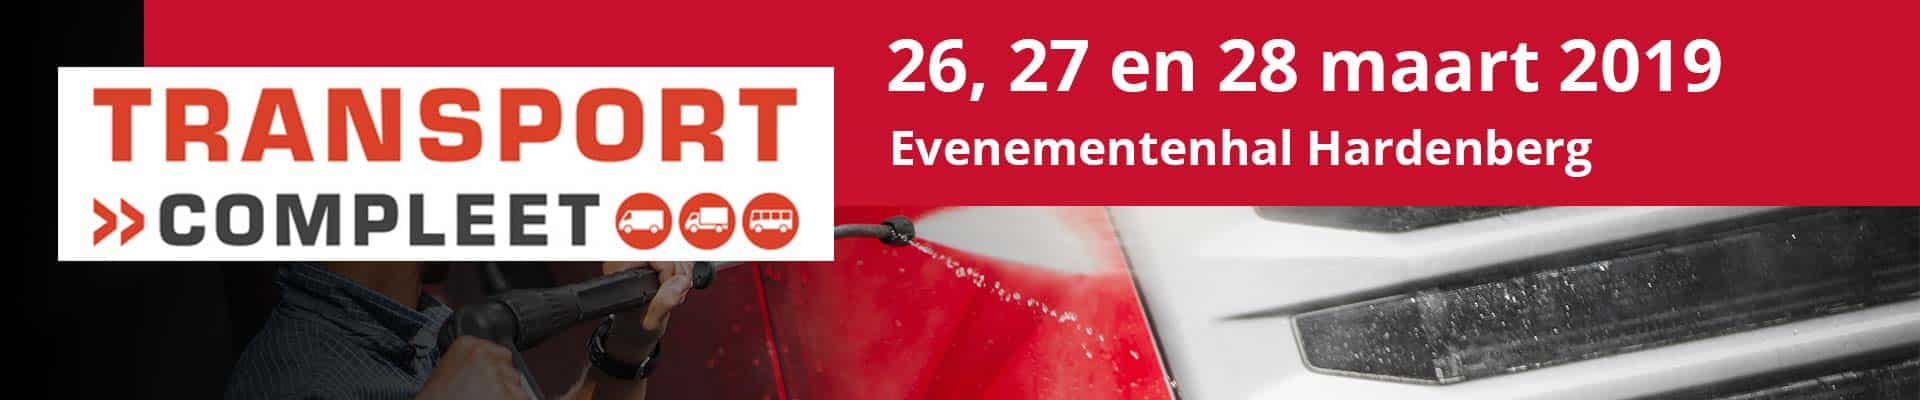 transport evenement